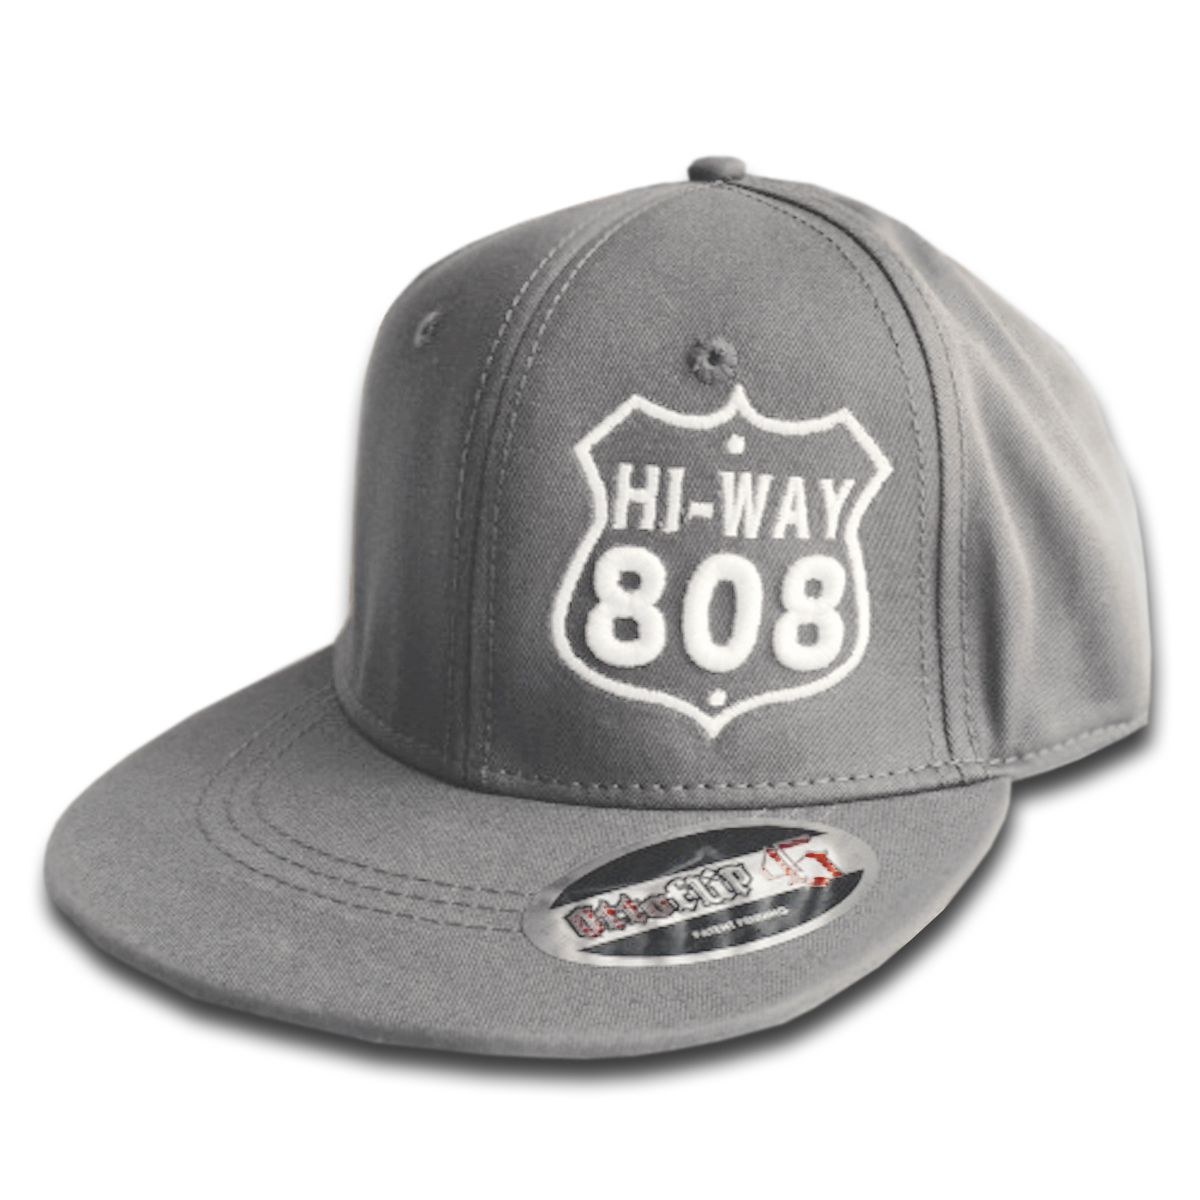 db946d5da09 This hat is a Patent Pending Otto Flip snap back hat. The bill flips up or  down in the front and returns to its original state without ever warping ...